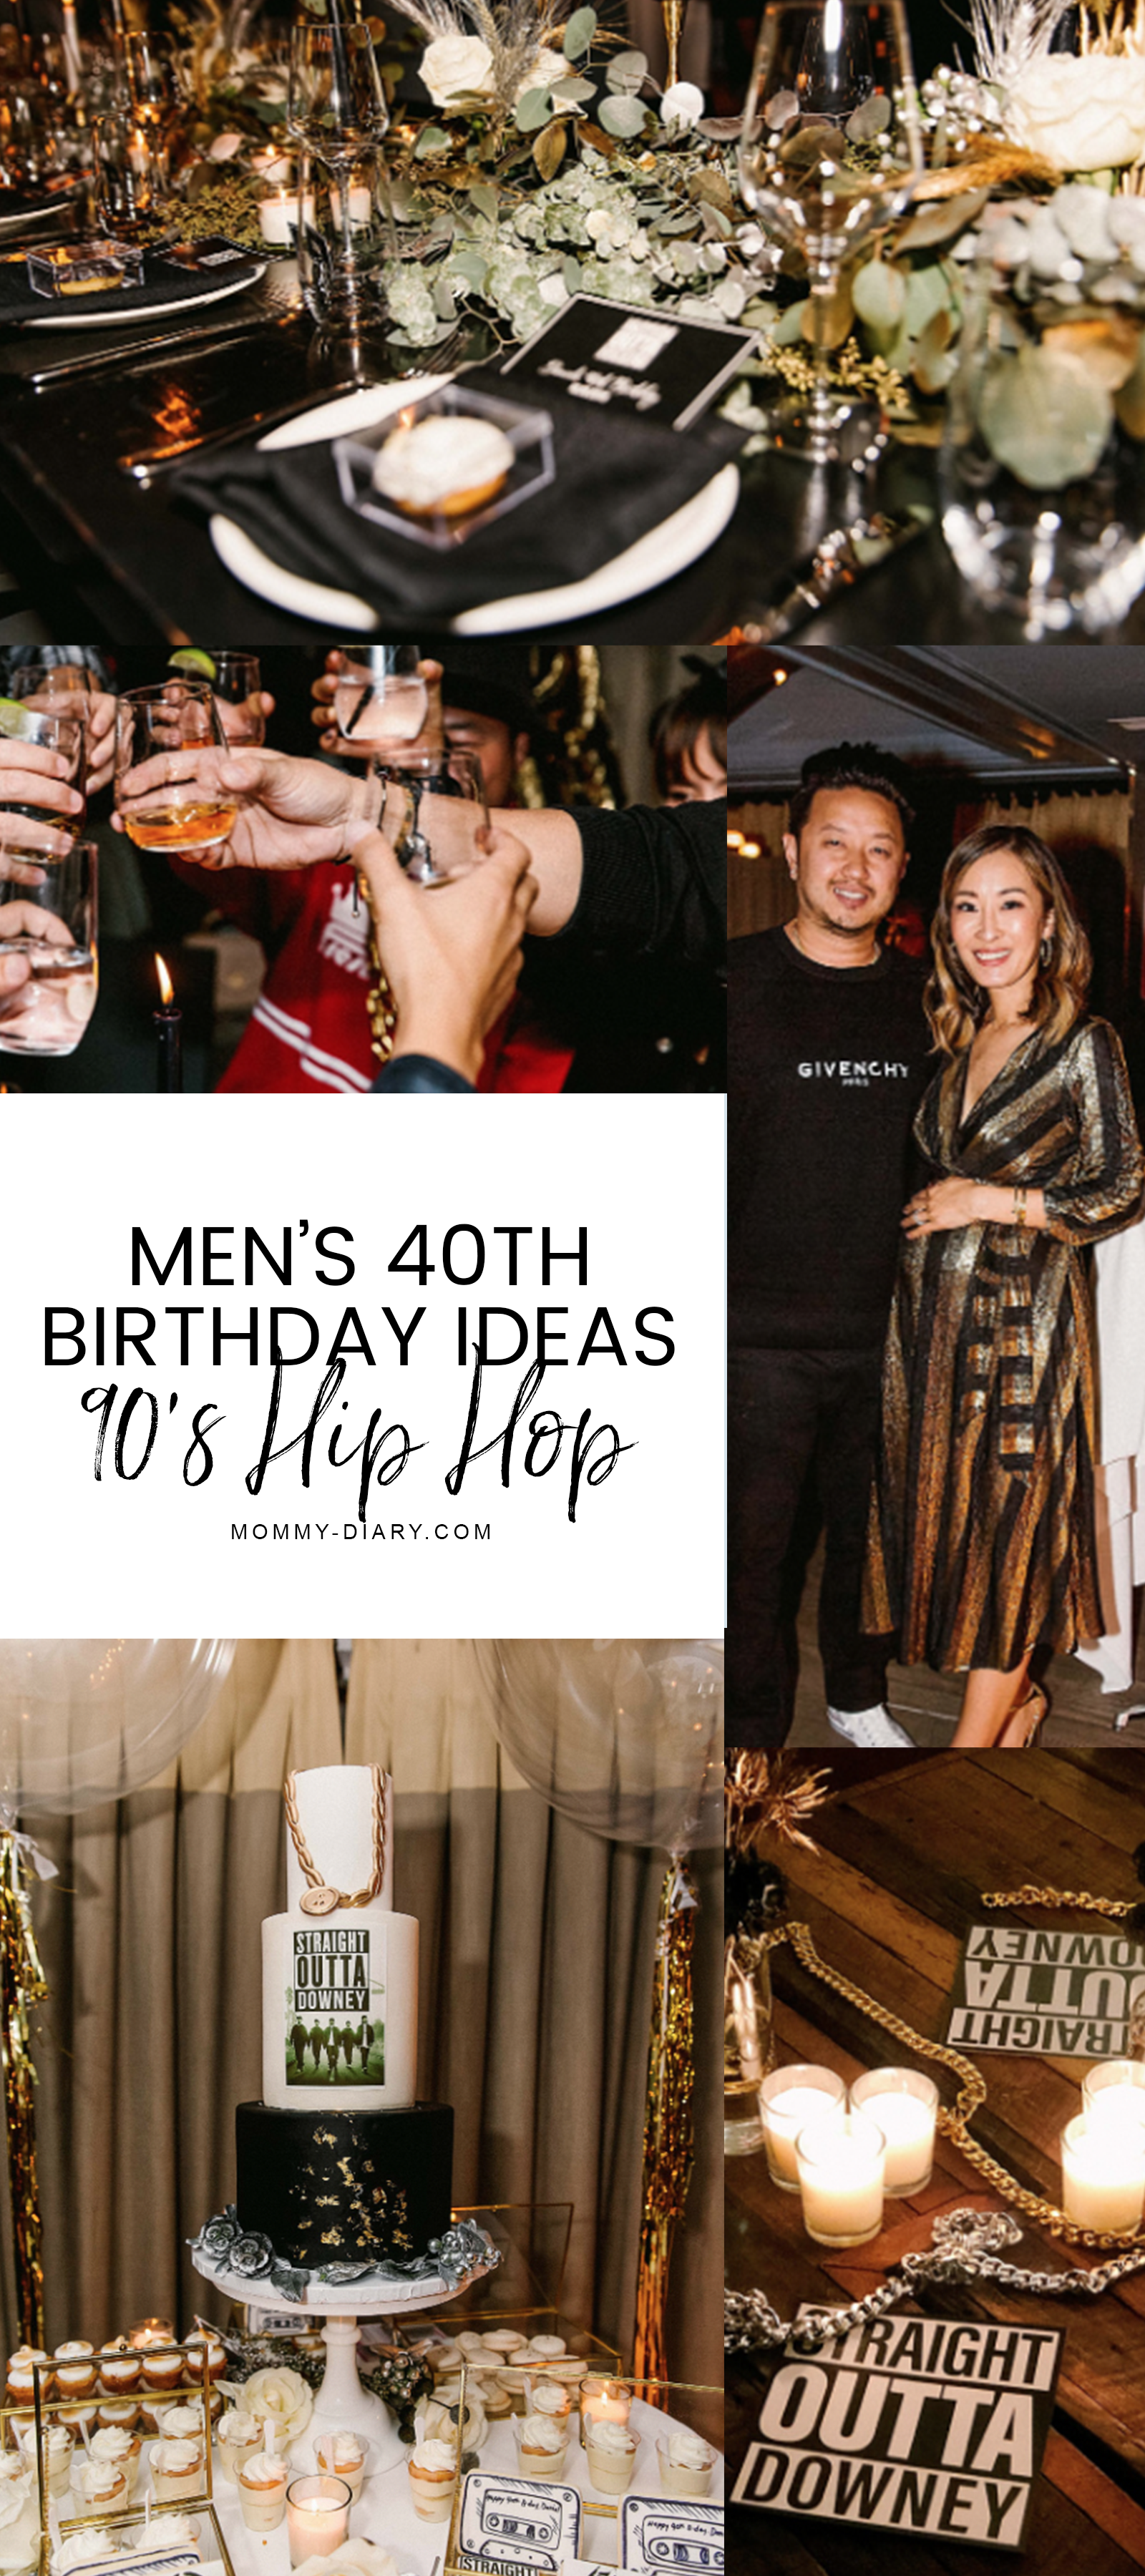 Men S 40th Birthday Party Inspiration 90 S Hip Hop Straight Outta Compton Mommy Diary 40th Birthday Men Men Birthday Party Theme 40th Birthday Ideas For Men Husband [ 3600 x 1600 Pixel ]